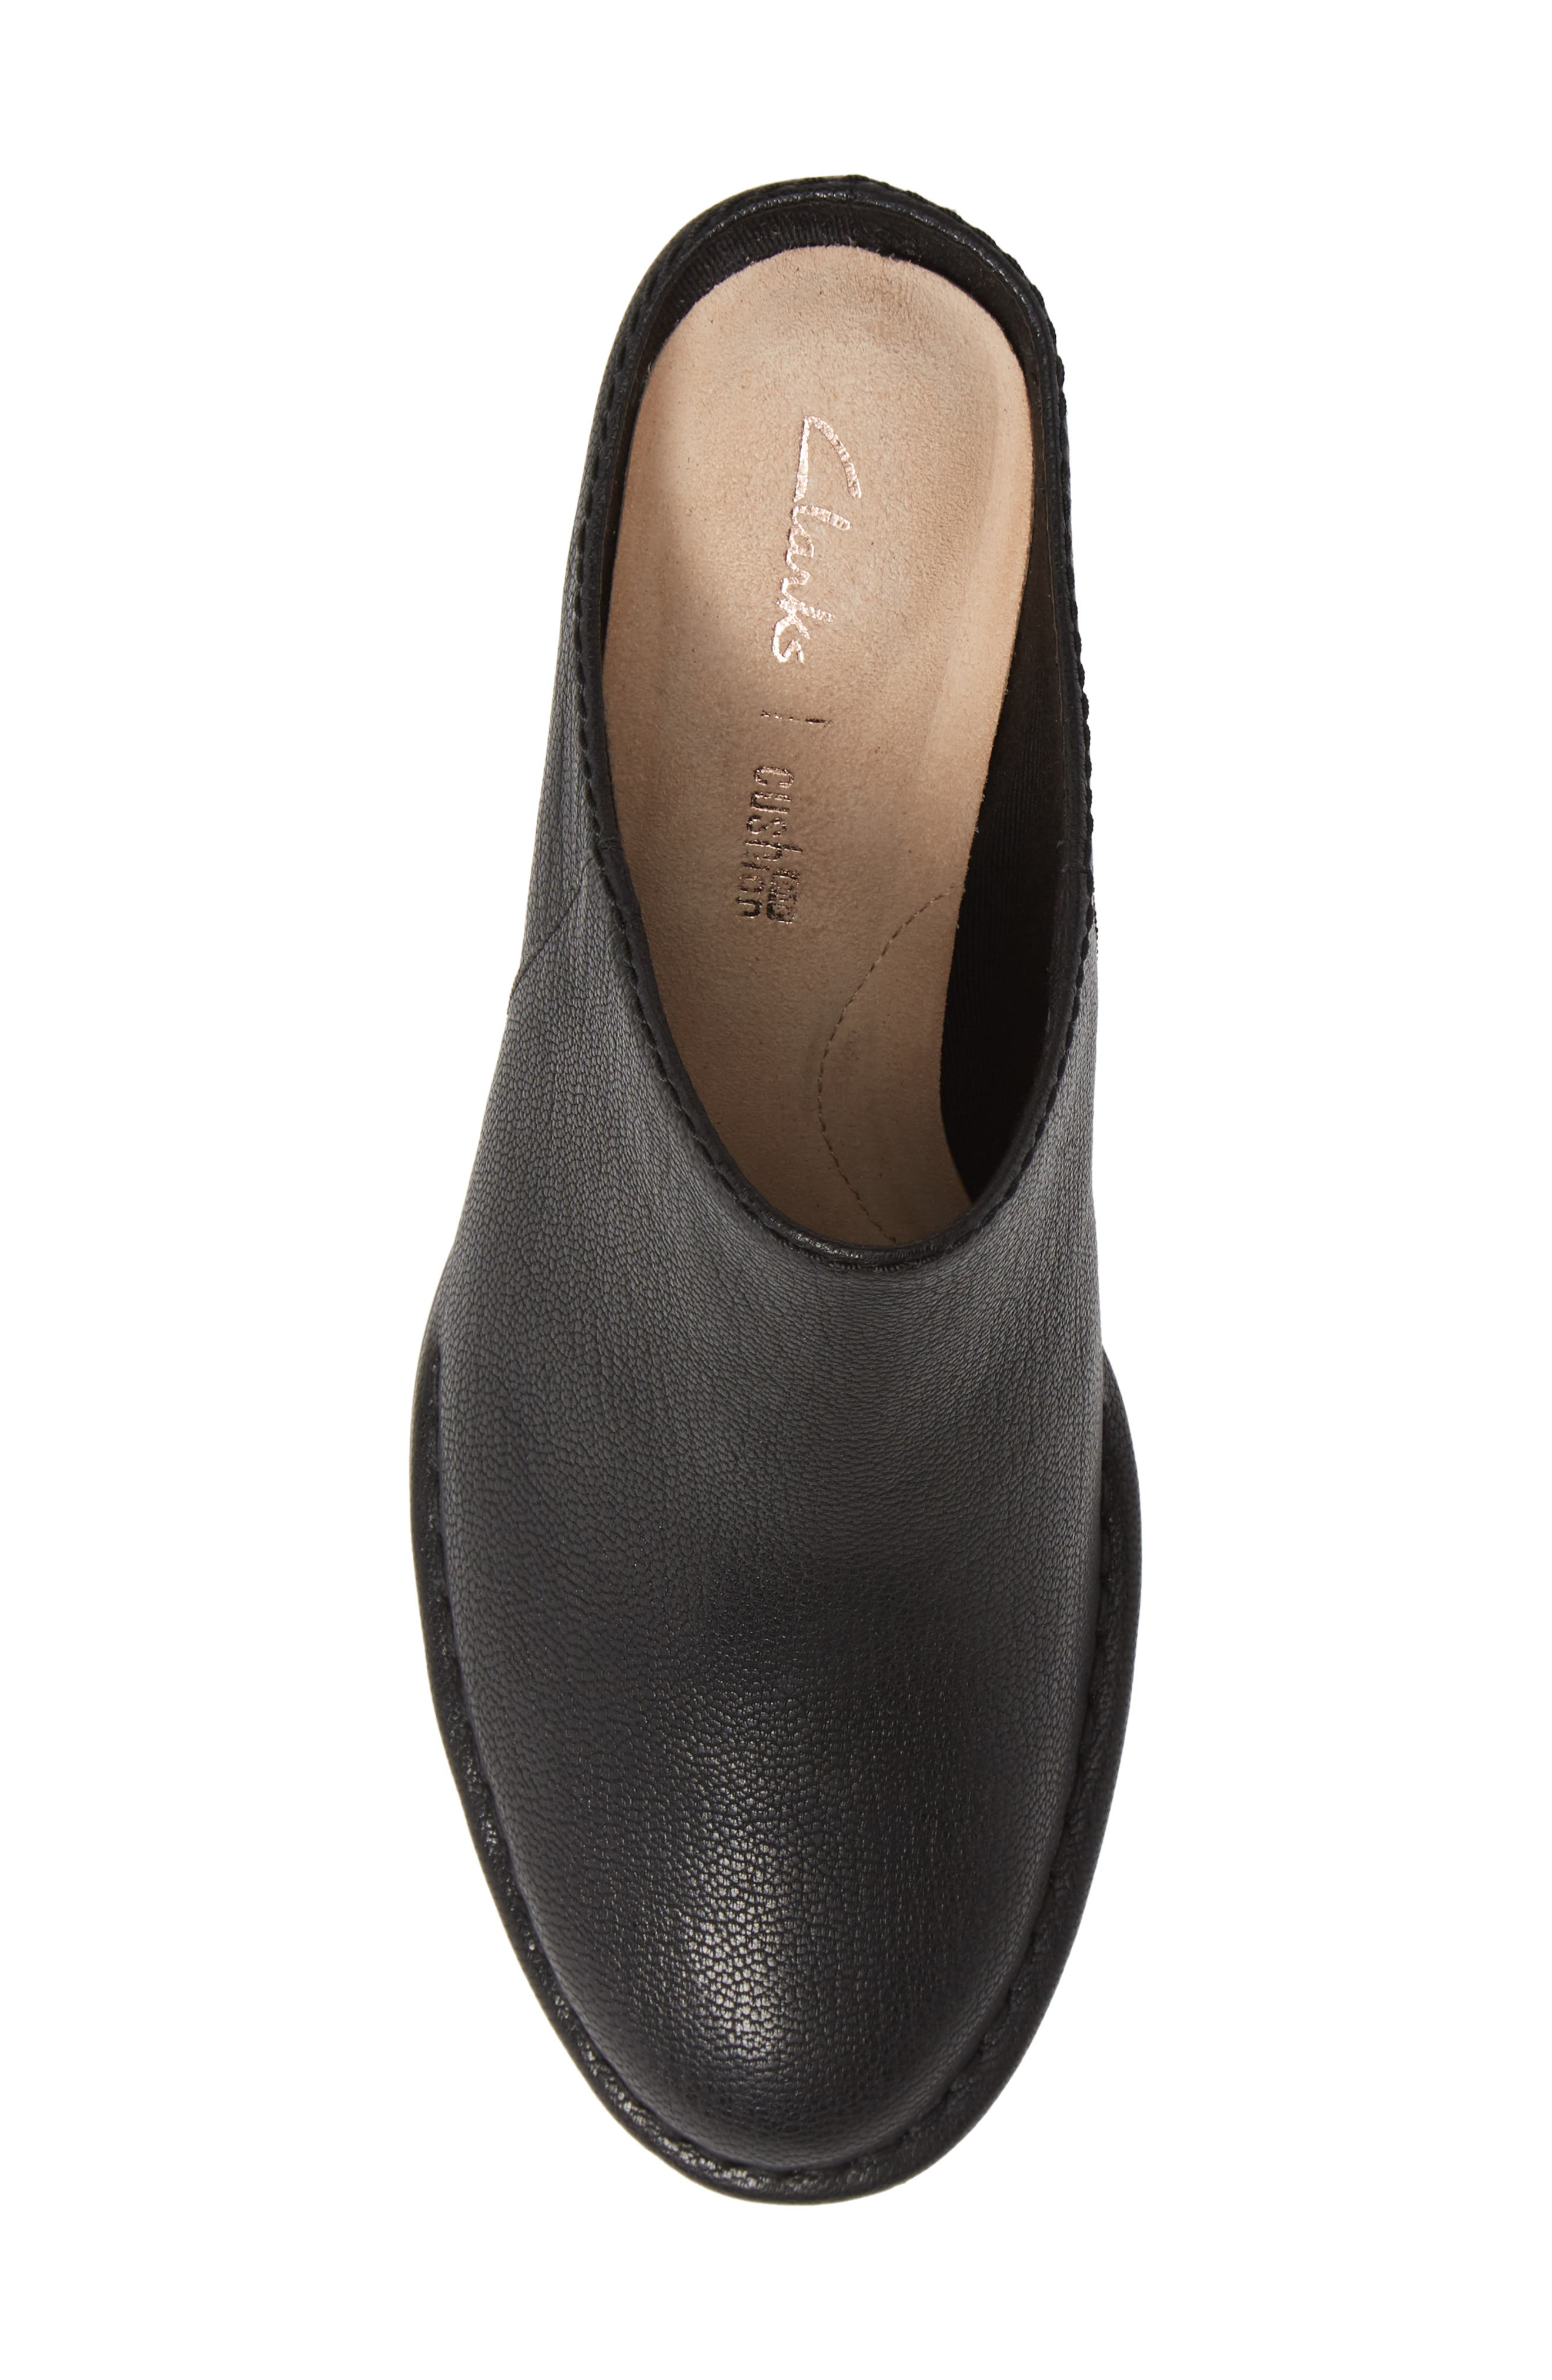 CLARKS<SUP>®</SUP>, Spiced Isla Mule, Alternate thumbnail 5, color, BLACK LEATHER